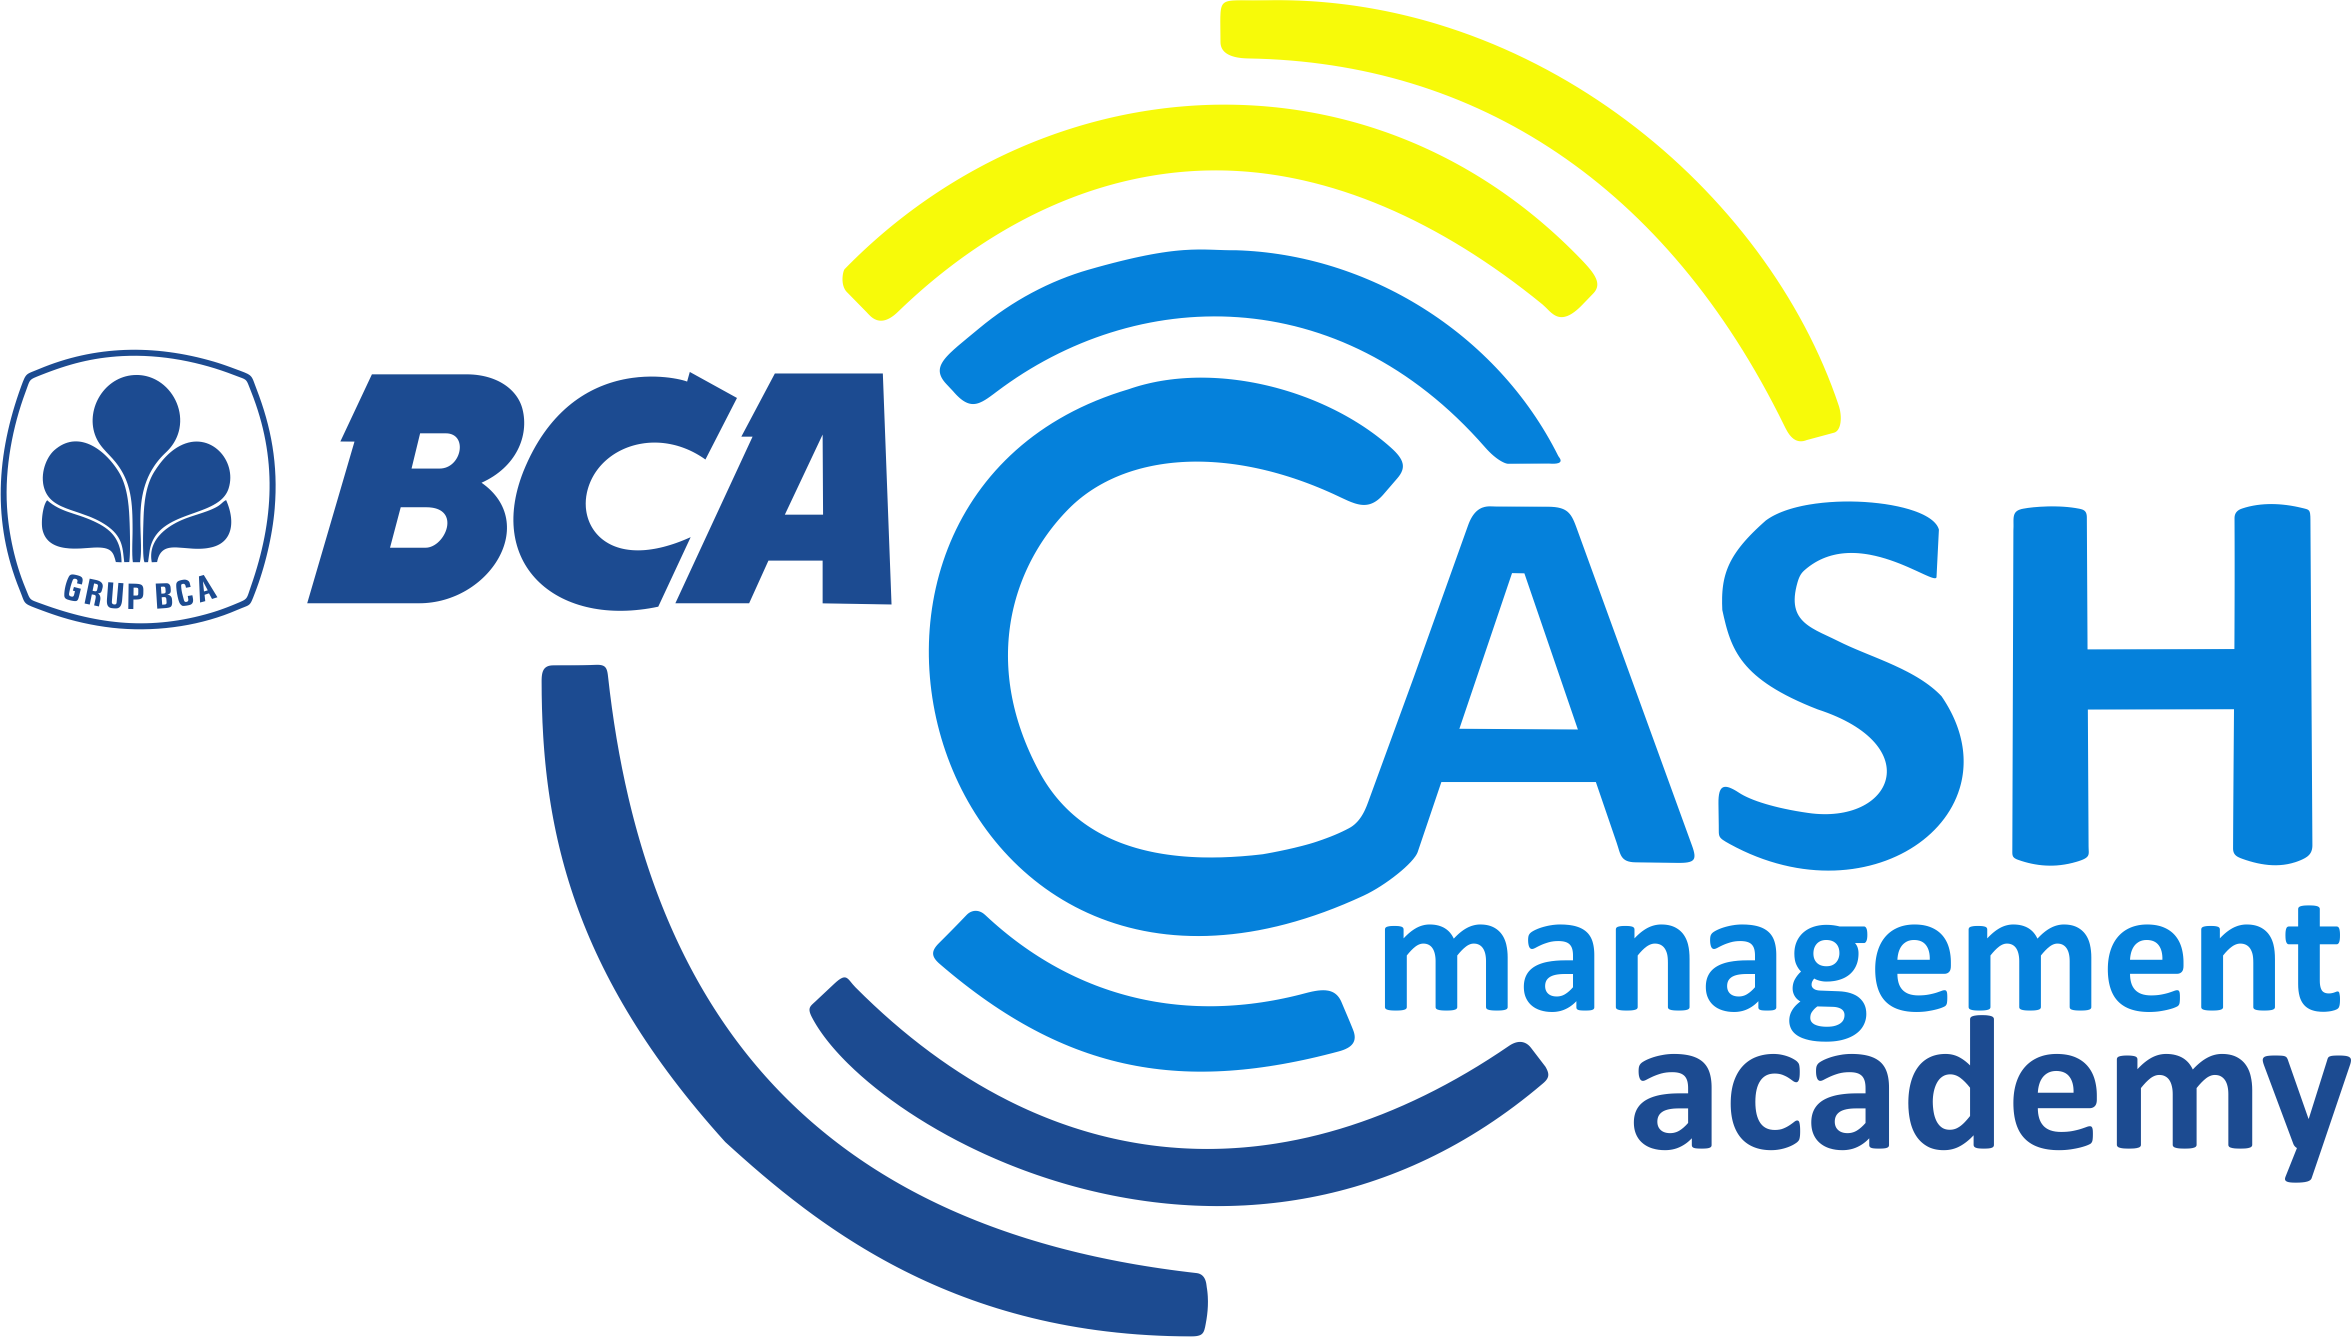 Logo BCA CASH Management Academy.png